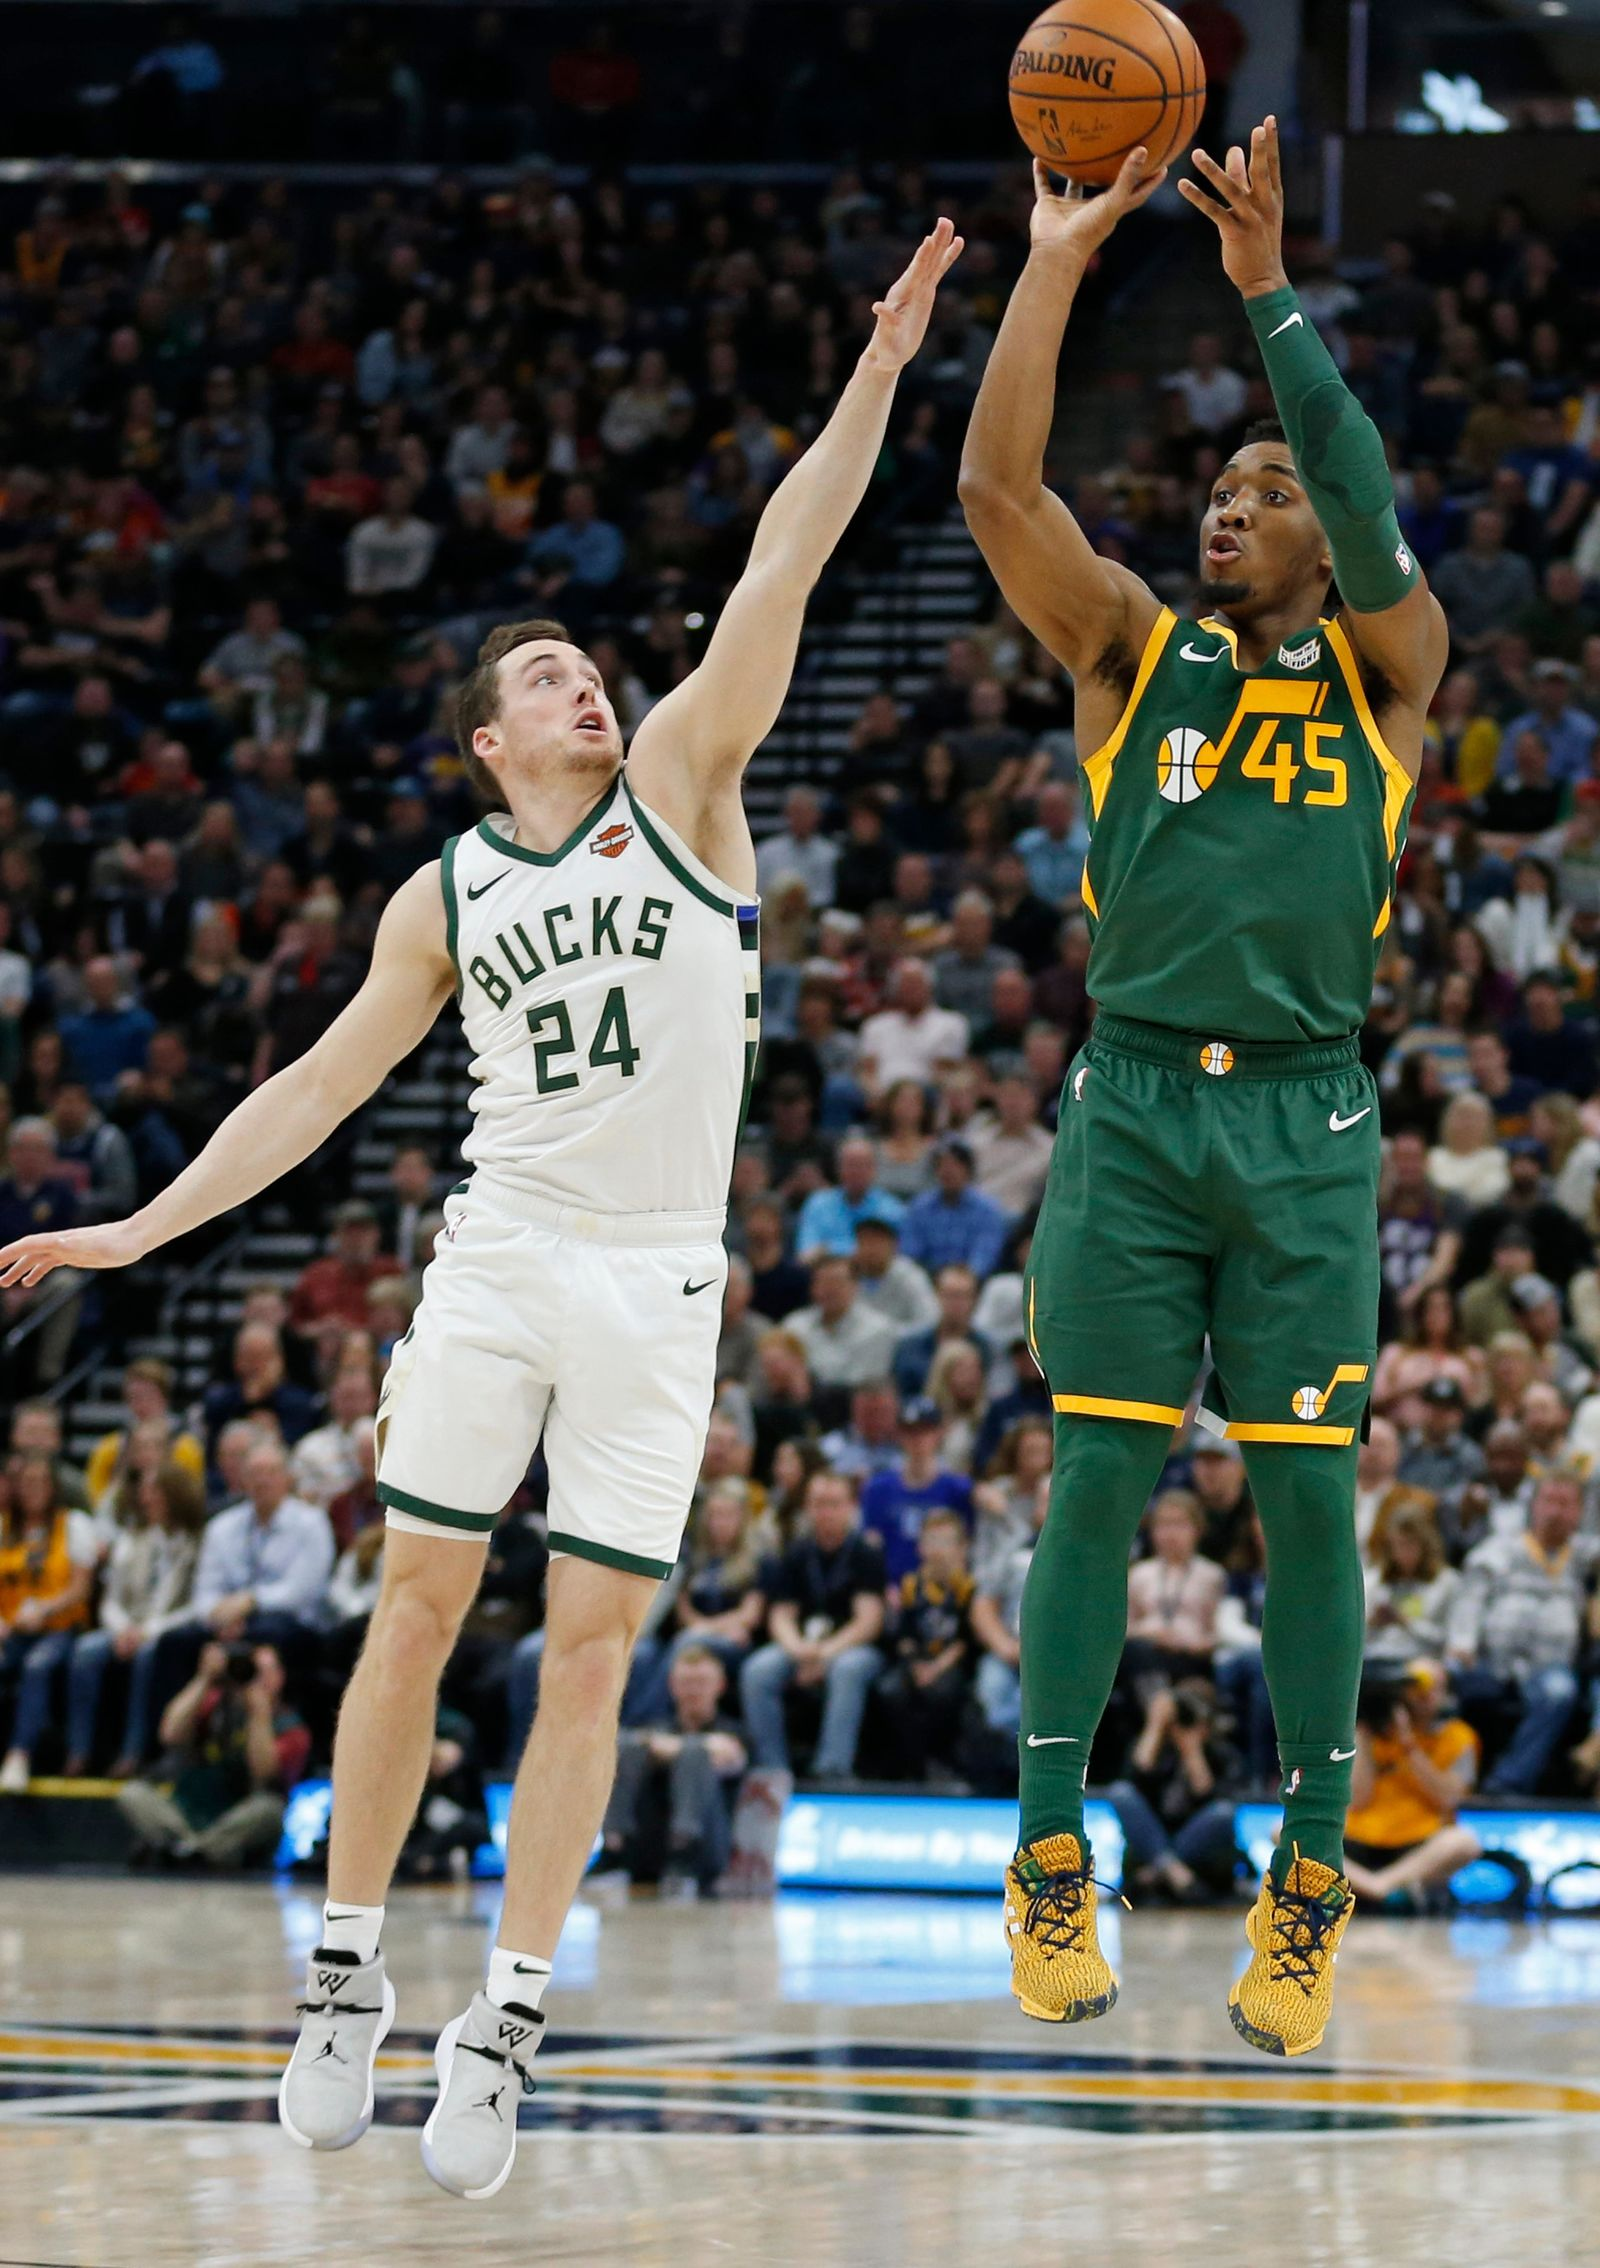 Utah Jazz guard Donovan Mitchell (45) shoots as Milwaukee Bucks guard Pat Connaughton (24) defends during the first half of an NBA basketball game Saturday, March 2, 2019, in Salt Lake City. (AP Photo/Rick Bowmer)